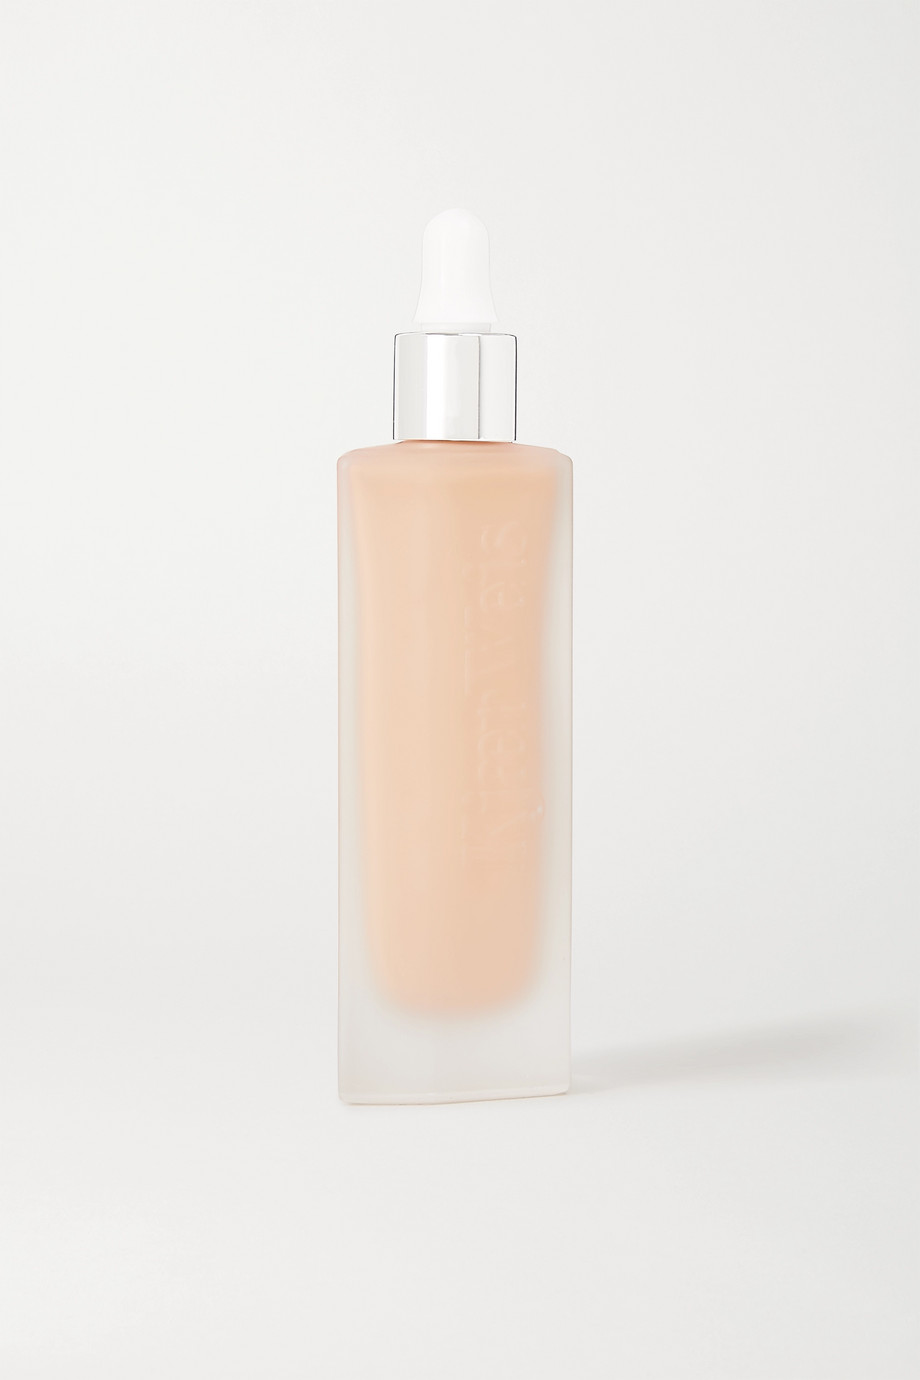 KJAER WEIS Invisible Touch Liquid Foundation - Whisper F110, 30ml